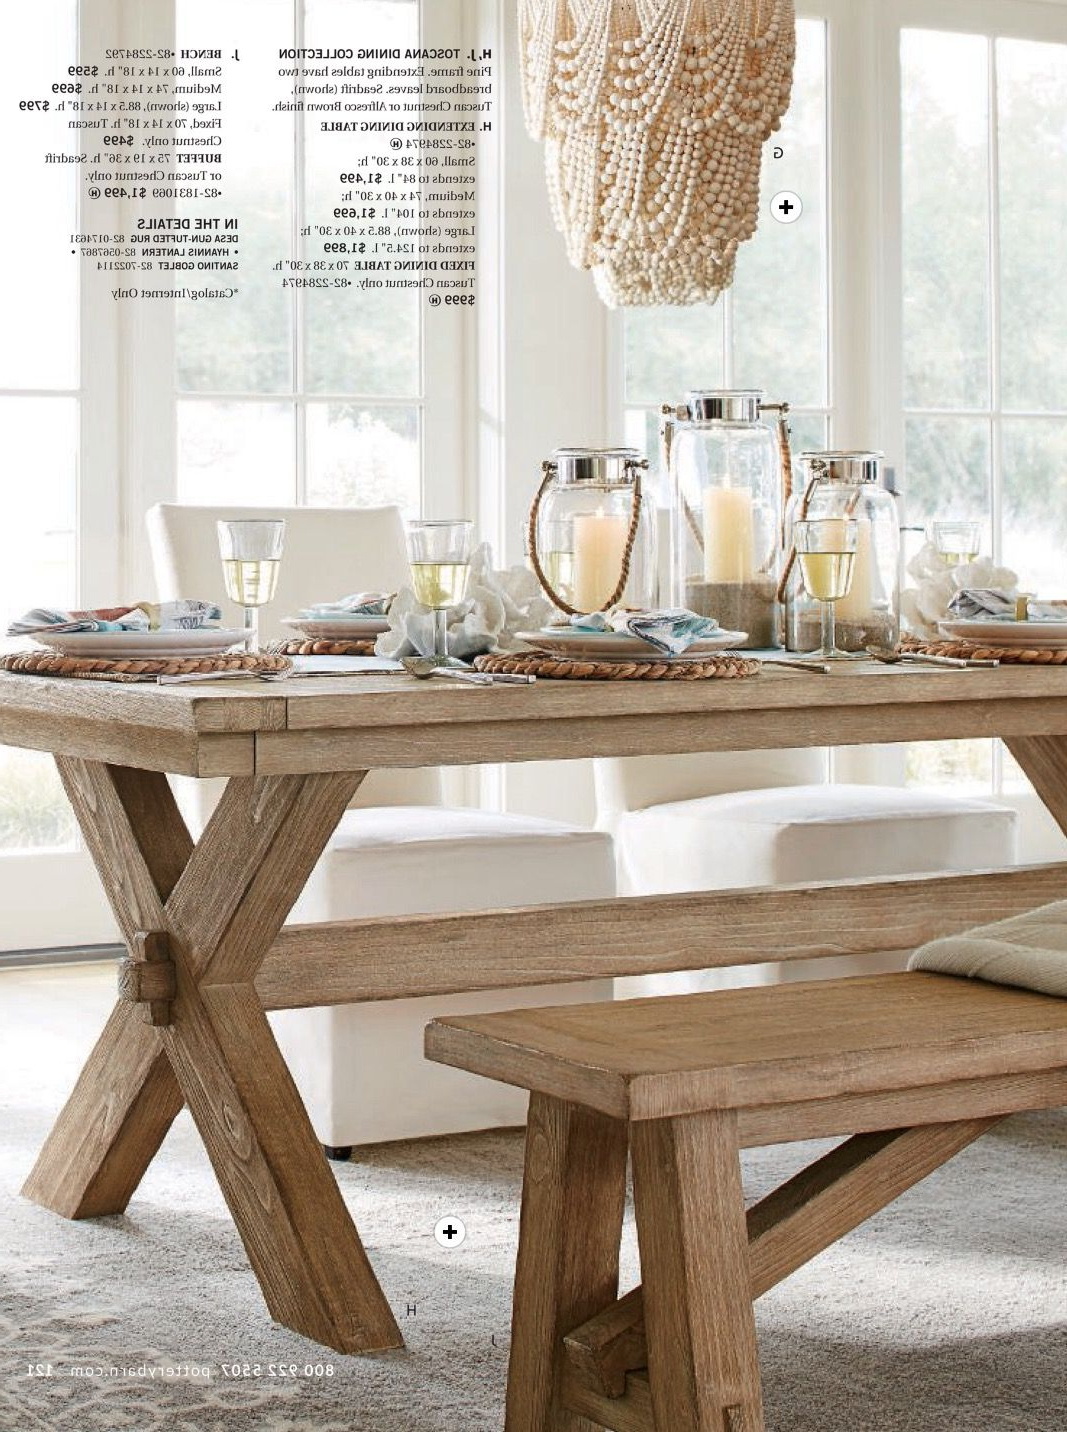 Toscano Dining Table And Bench In Seadrift, Amelia Wood Bead With Well Known Tuscan Chestnut Toscana Pedestal Extending Dining Tables (View 8 of 25)